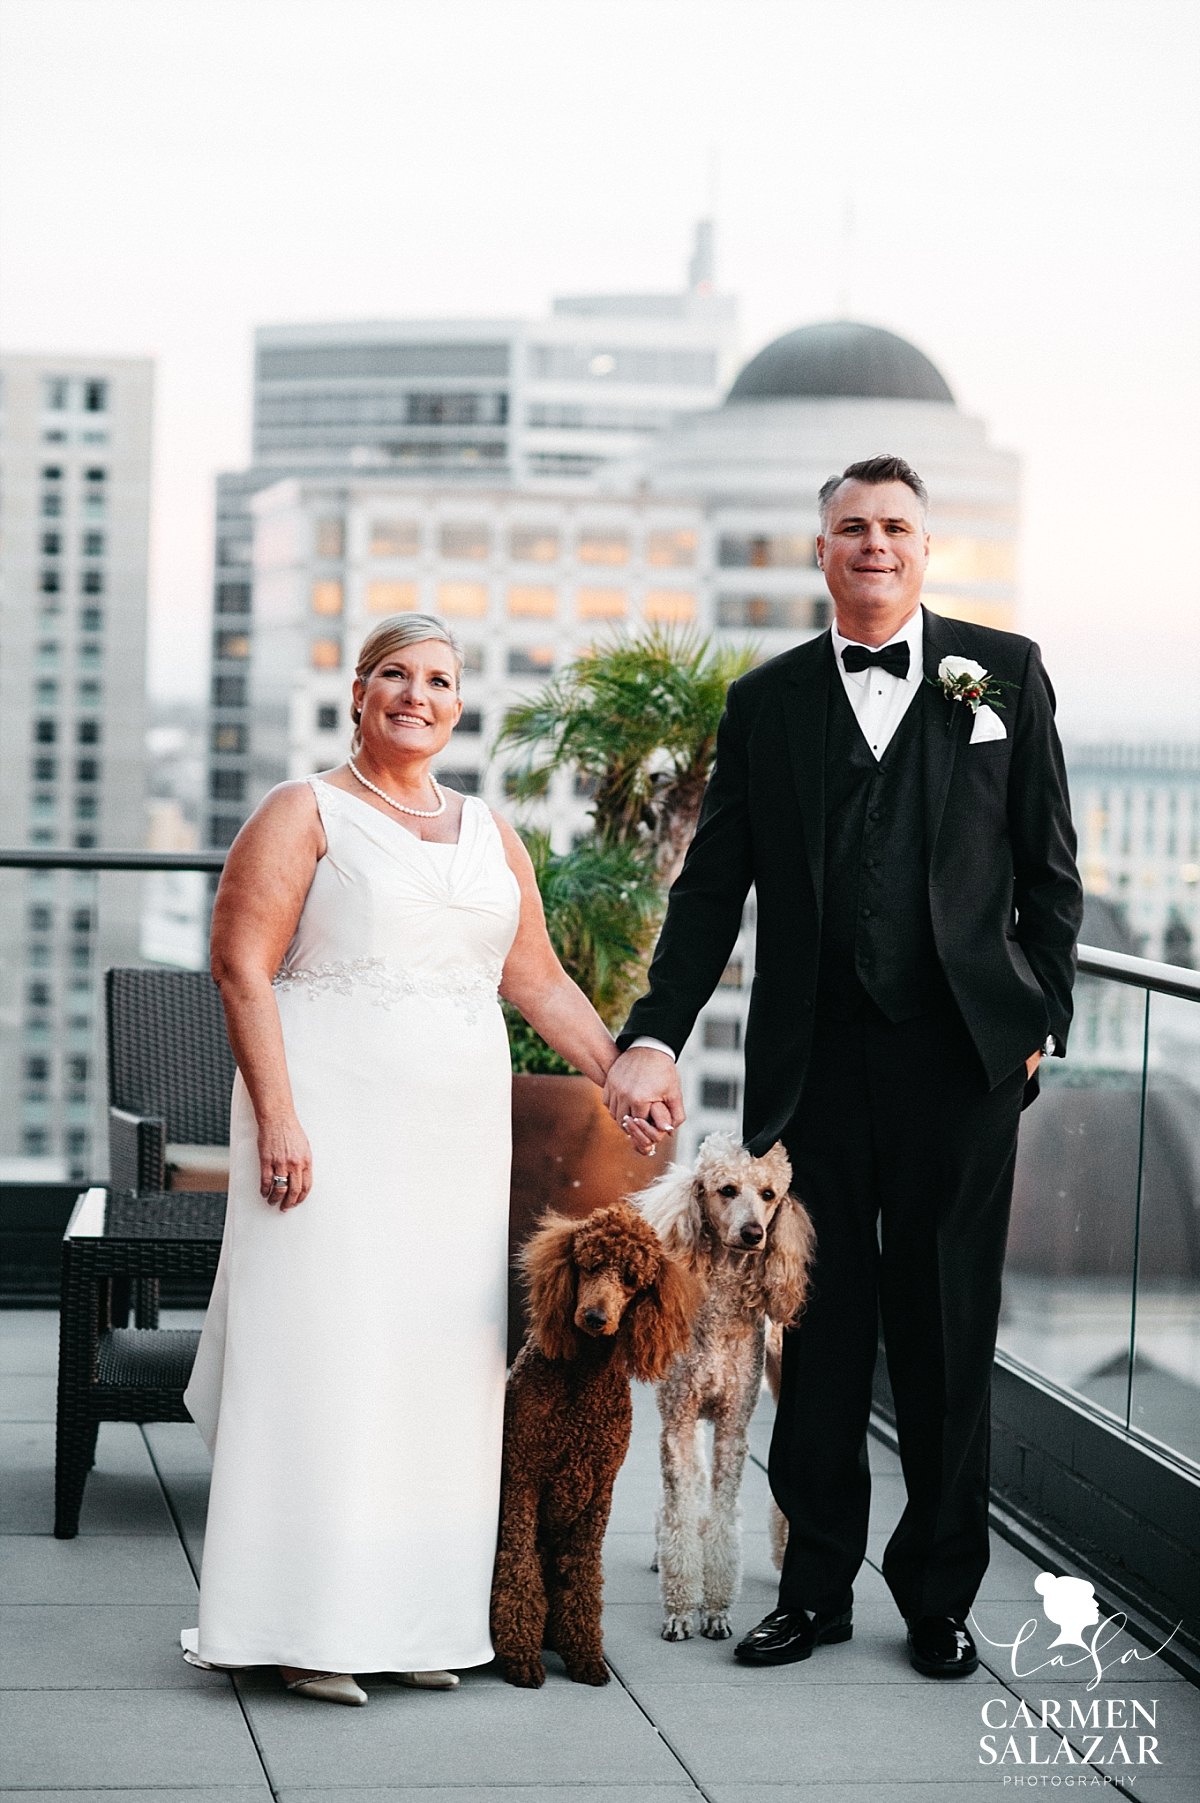 Sunset bride and groom photos at the Citizen Hotel - Carmen Salazar